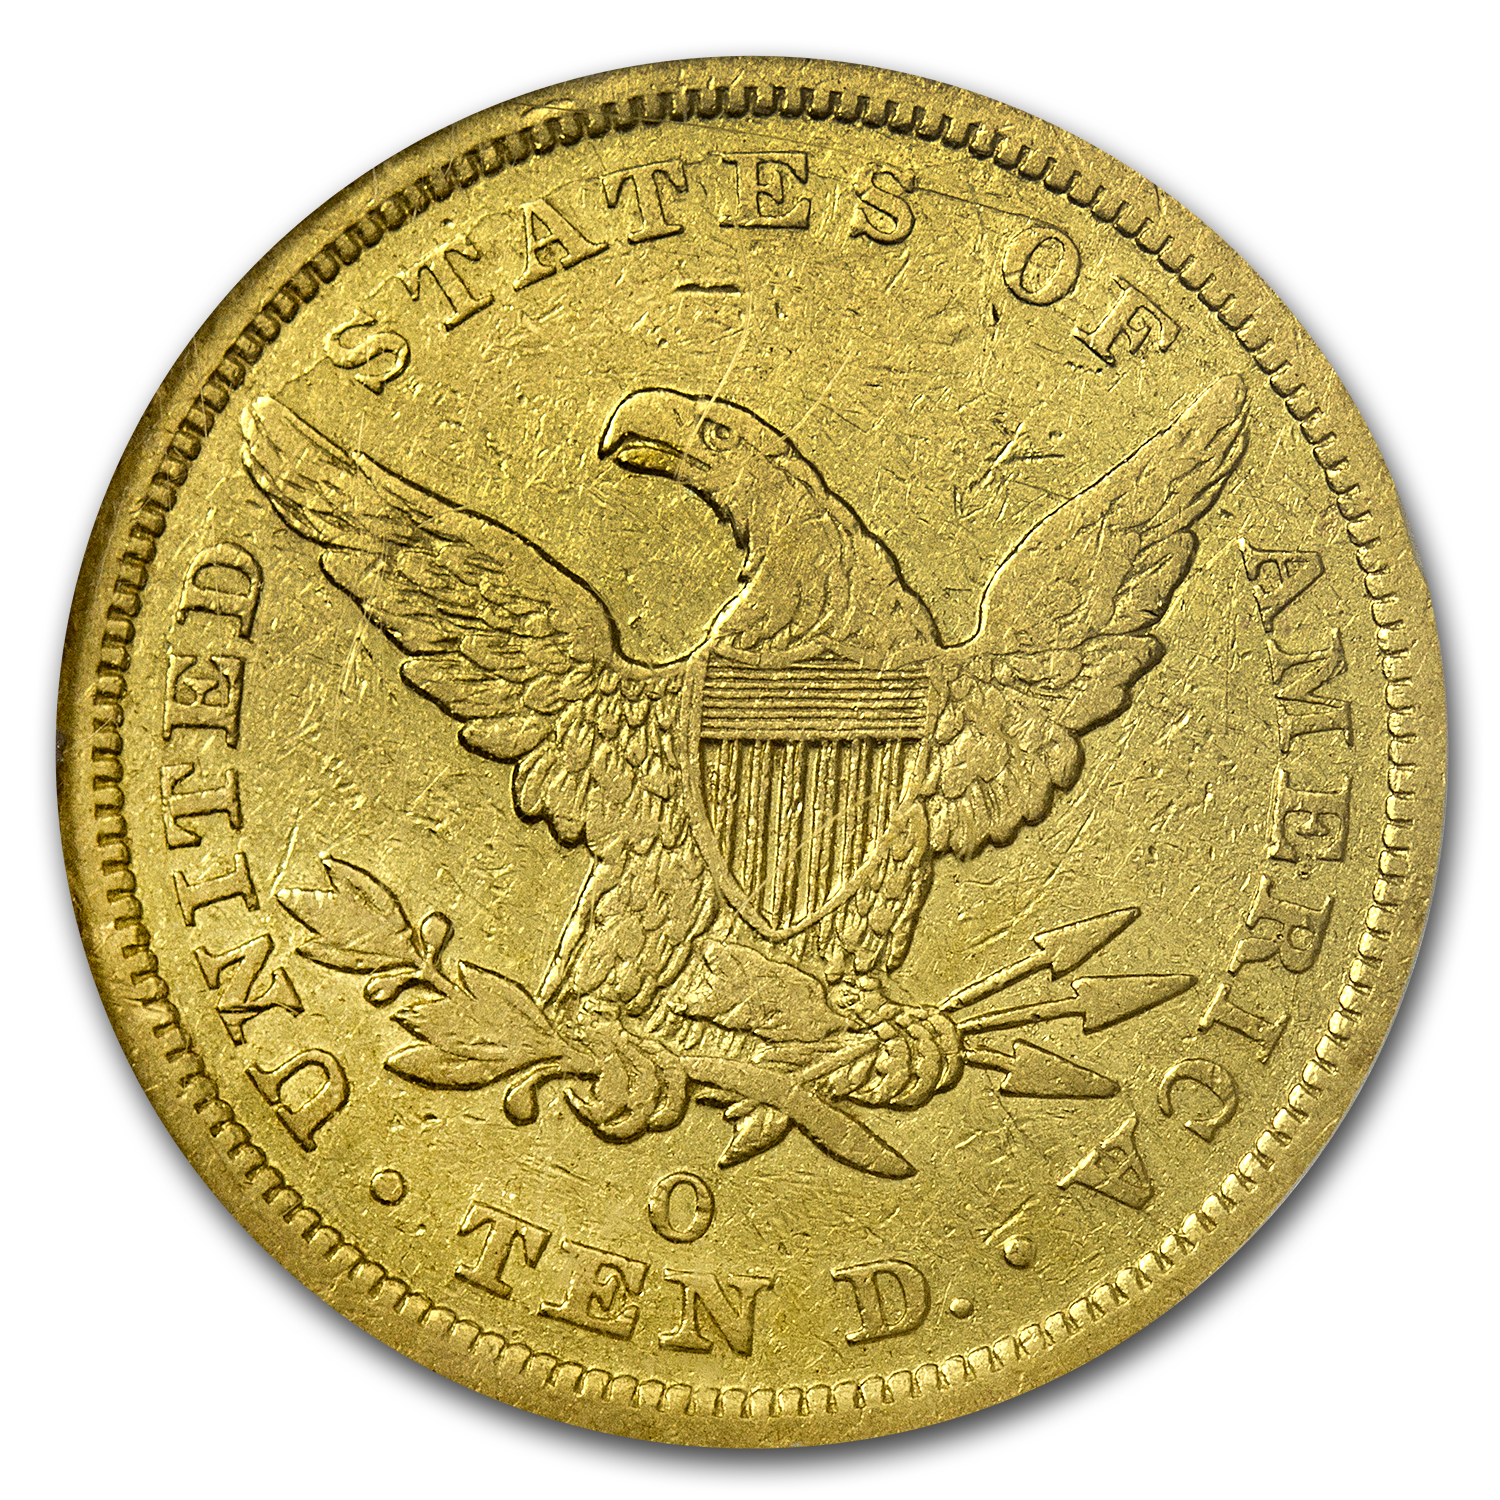 1843-O $10 Liberty Gold Eagle SS REPUBLIC - VF-35 NGC